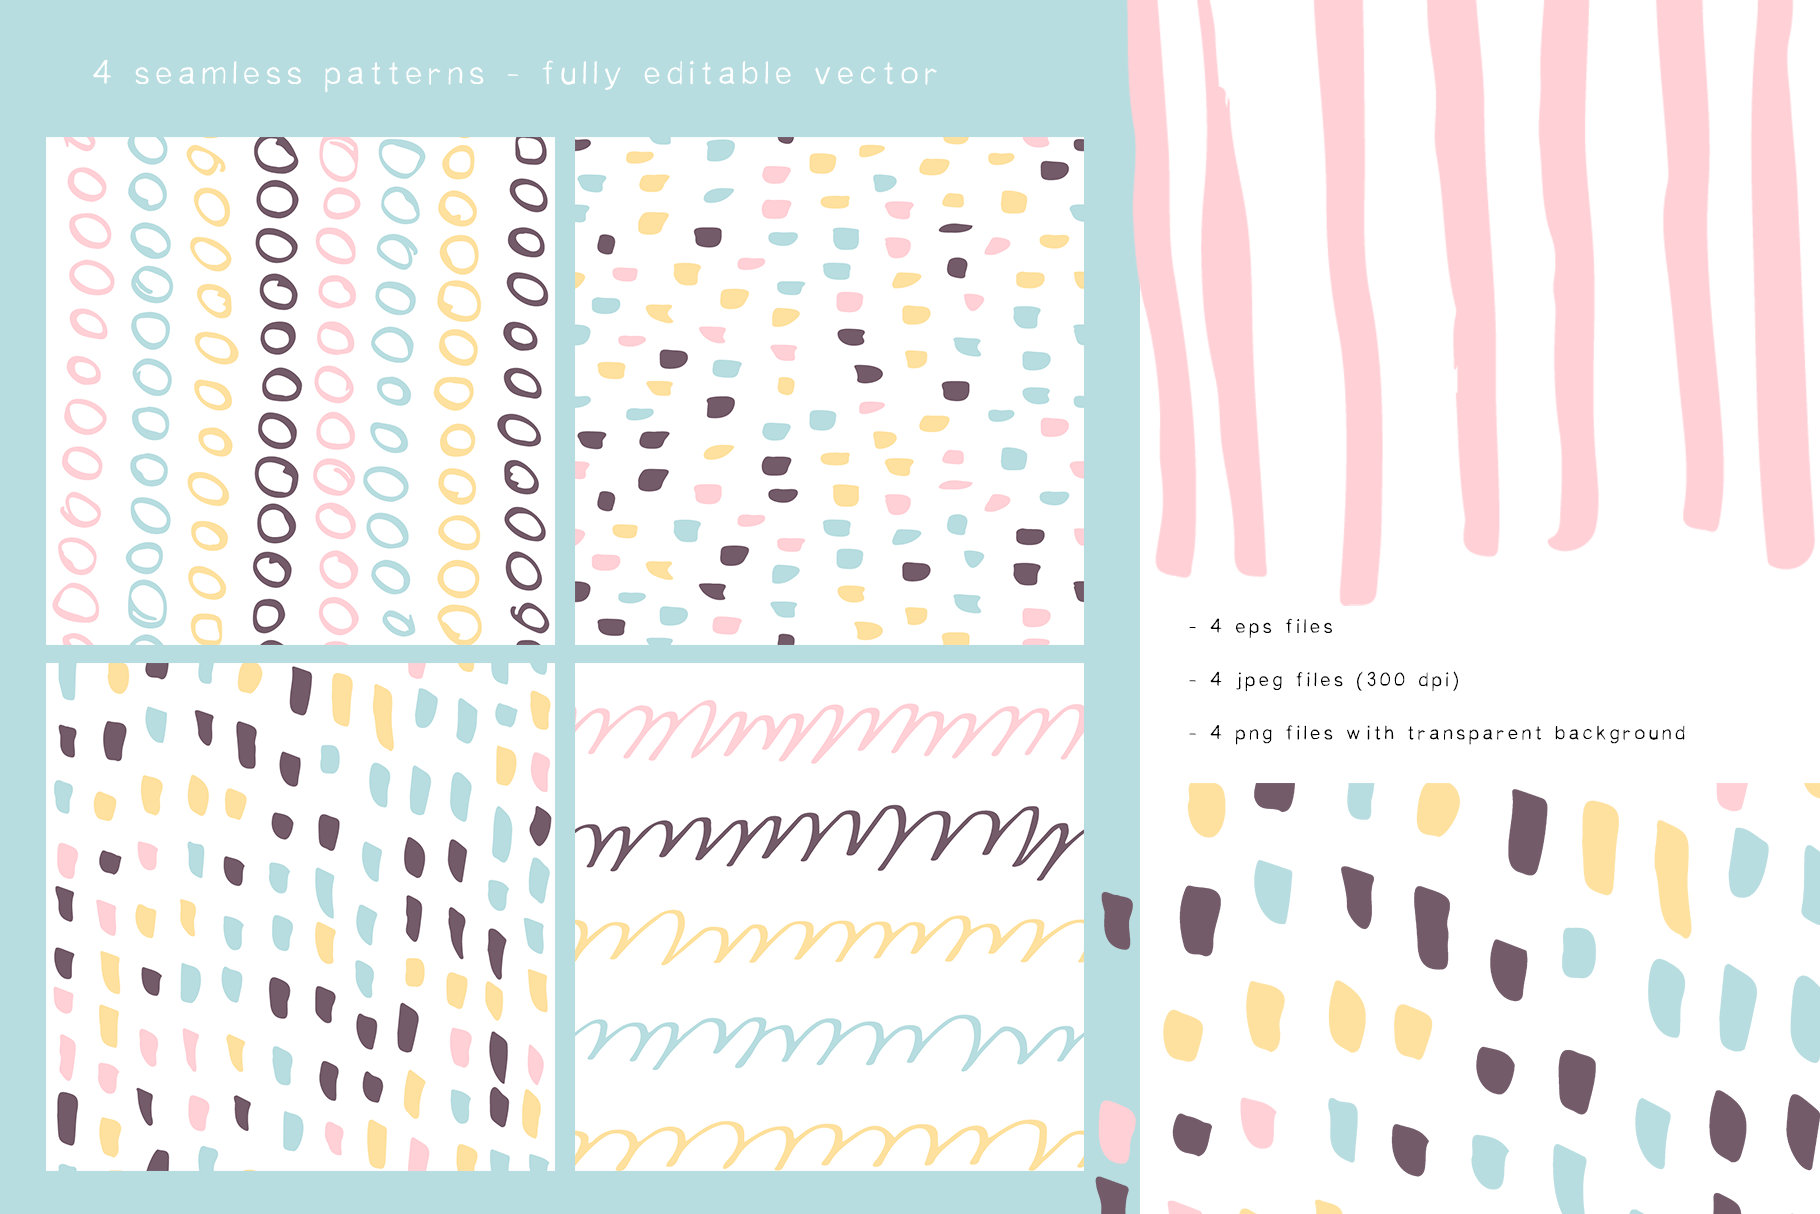 Abstract design elements. Collages & seamless patterns example image 5